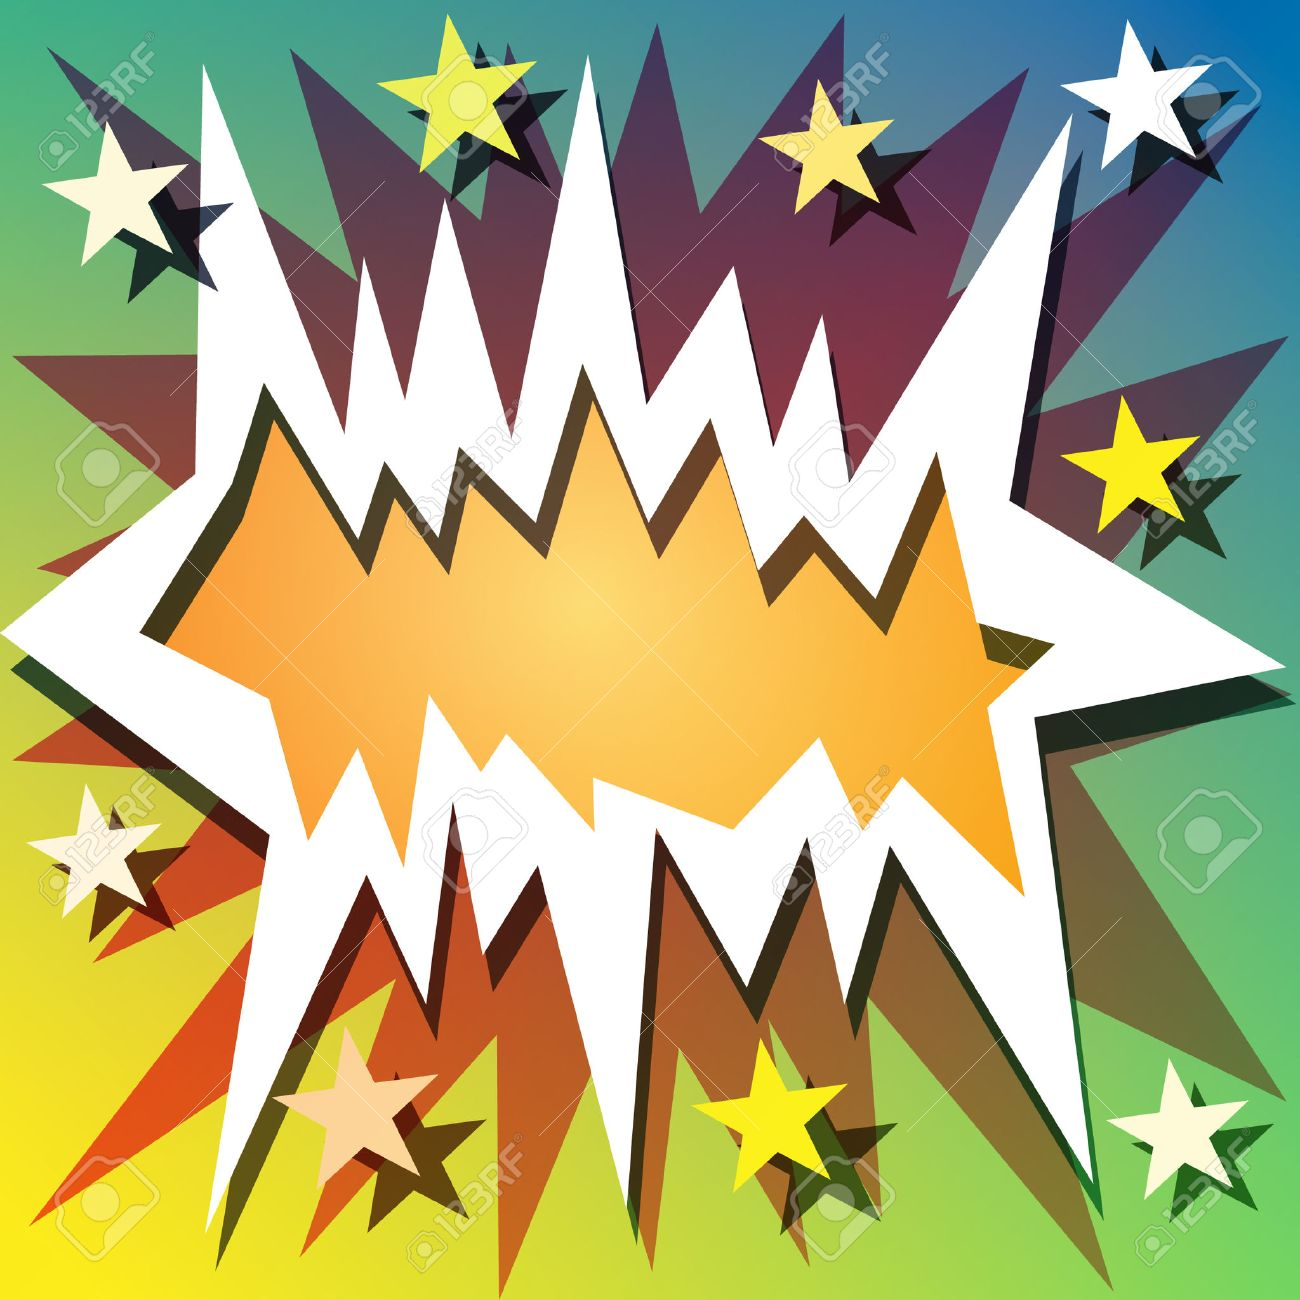 Comic Book Explosion Background with Stars Stock Vector - 8785308